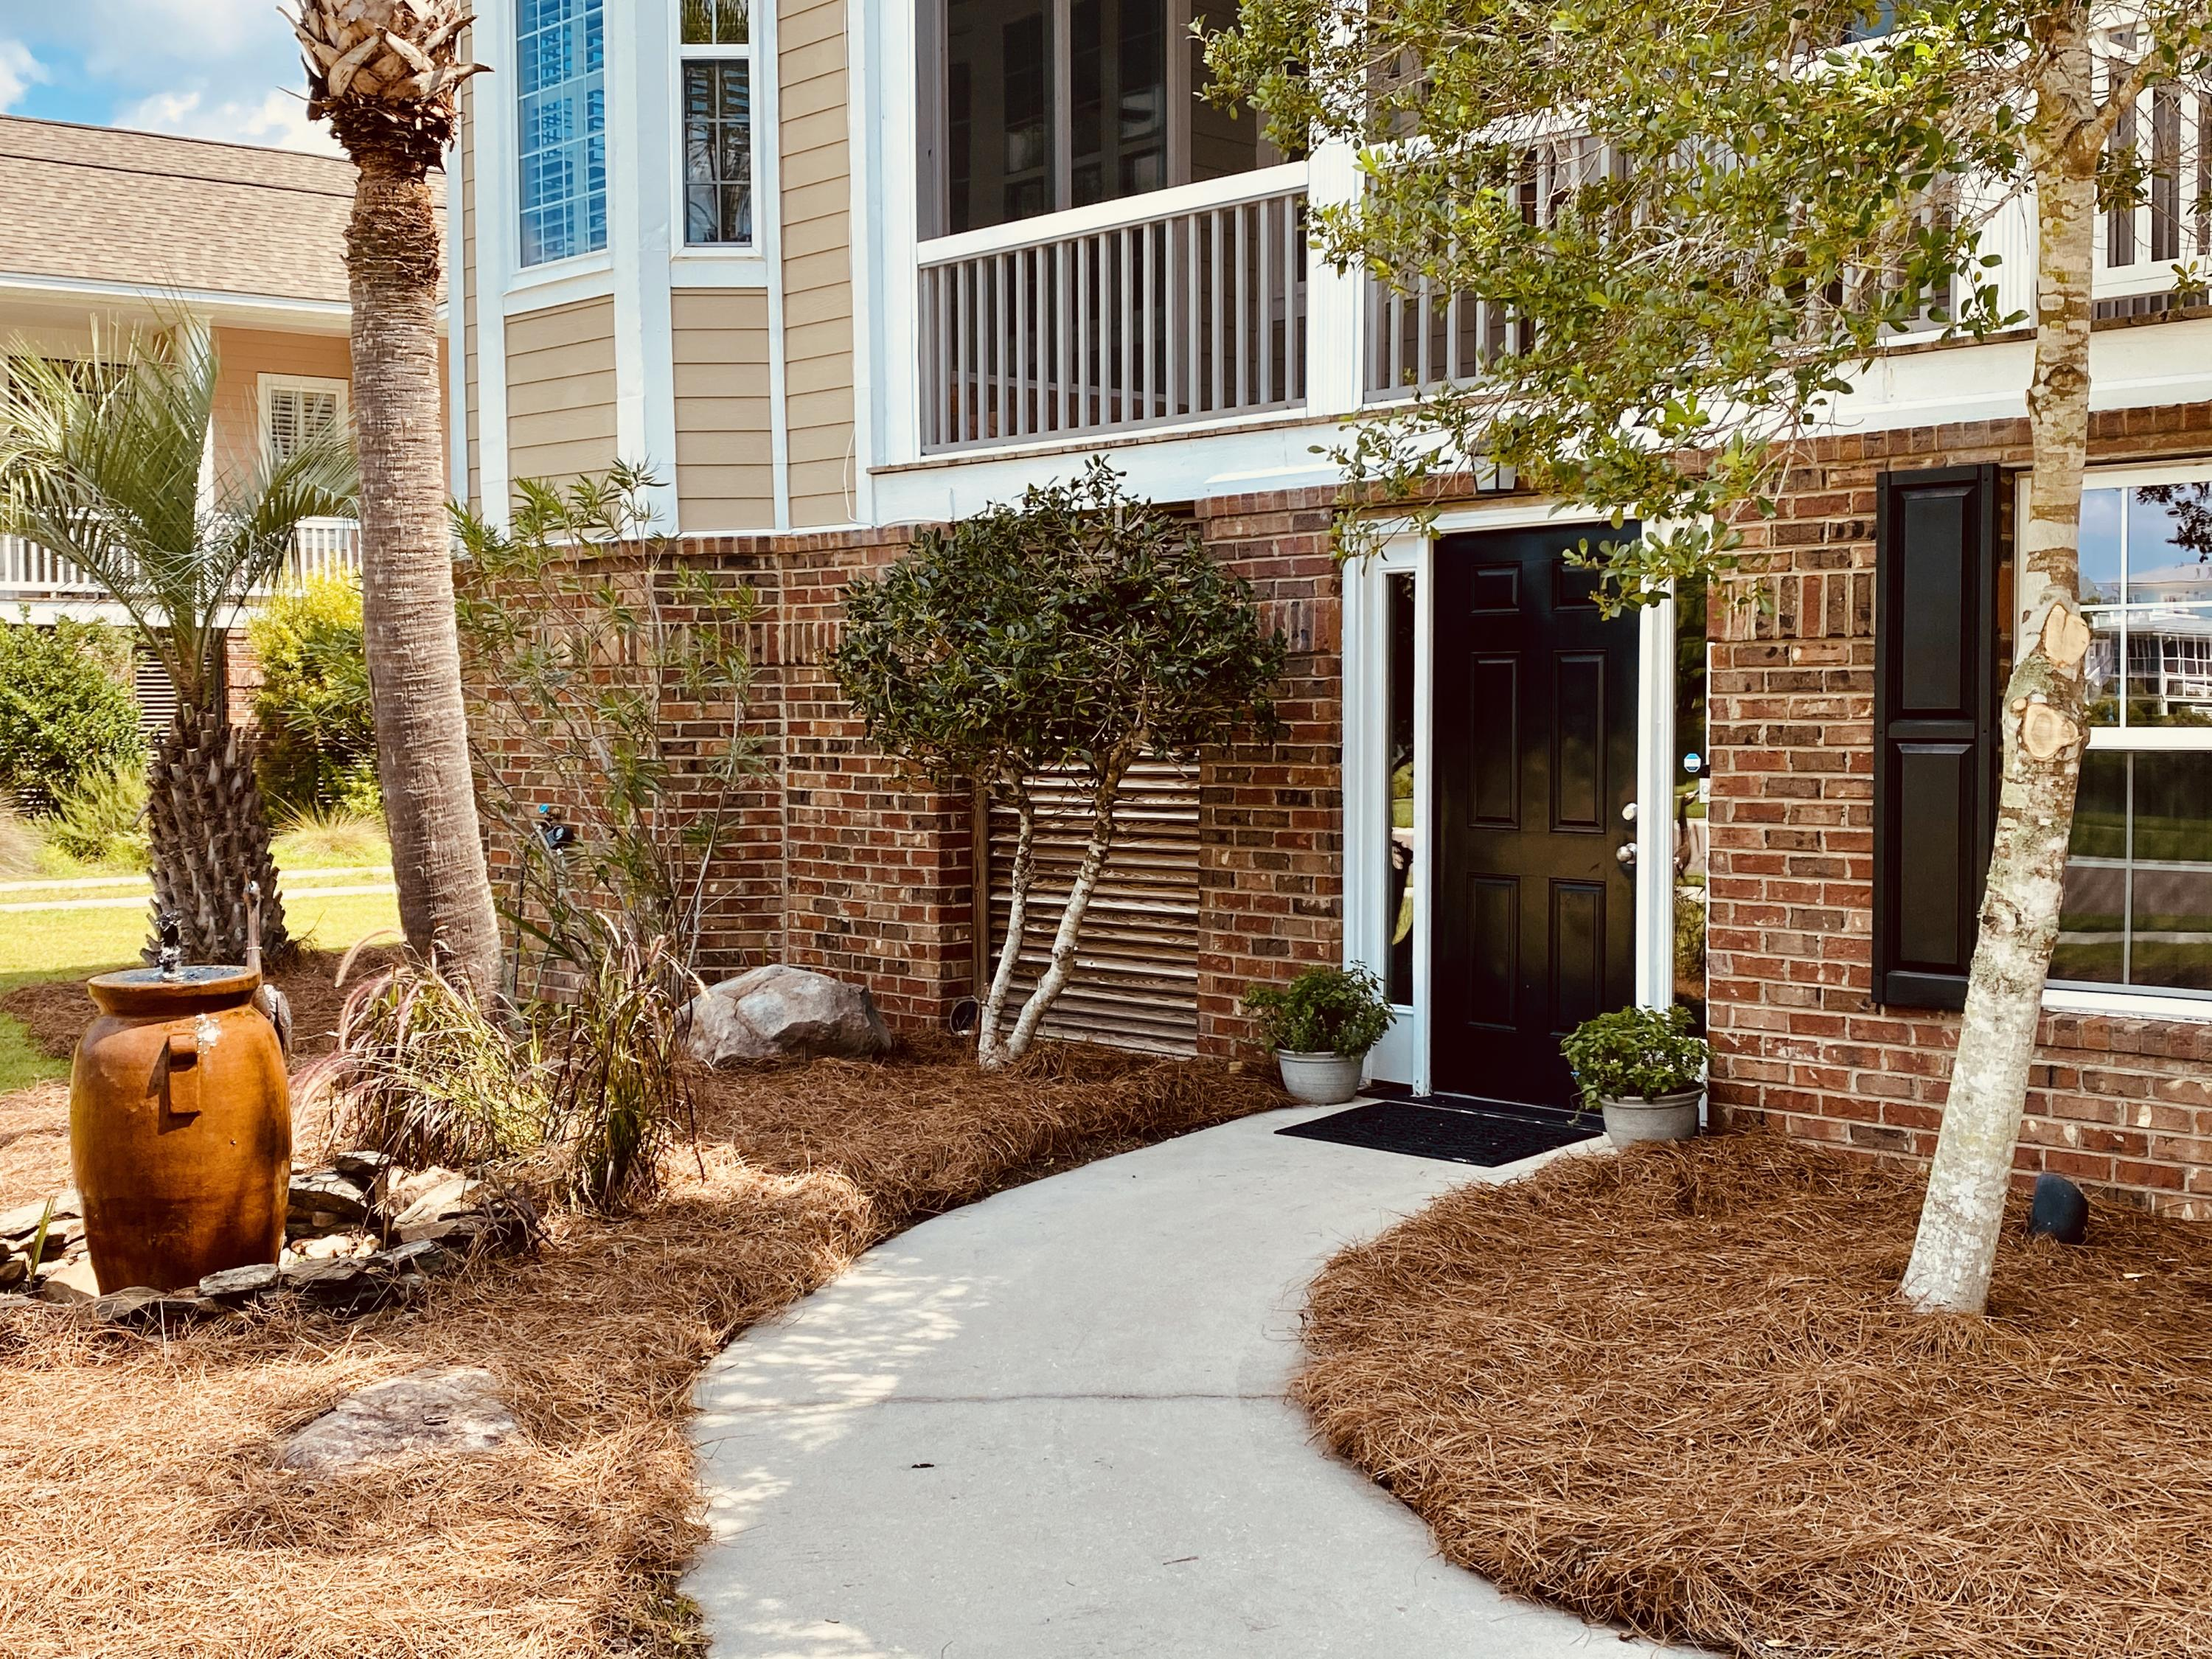 Rivertowne Country Club Homes For Sale - 1721 Rivertowne Country Club, Mount Pleasant, SC - 23